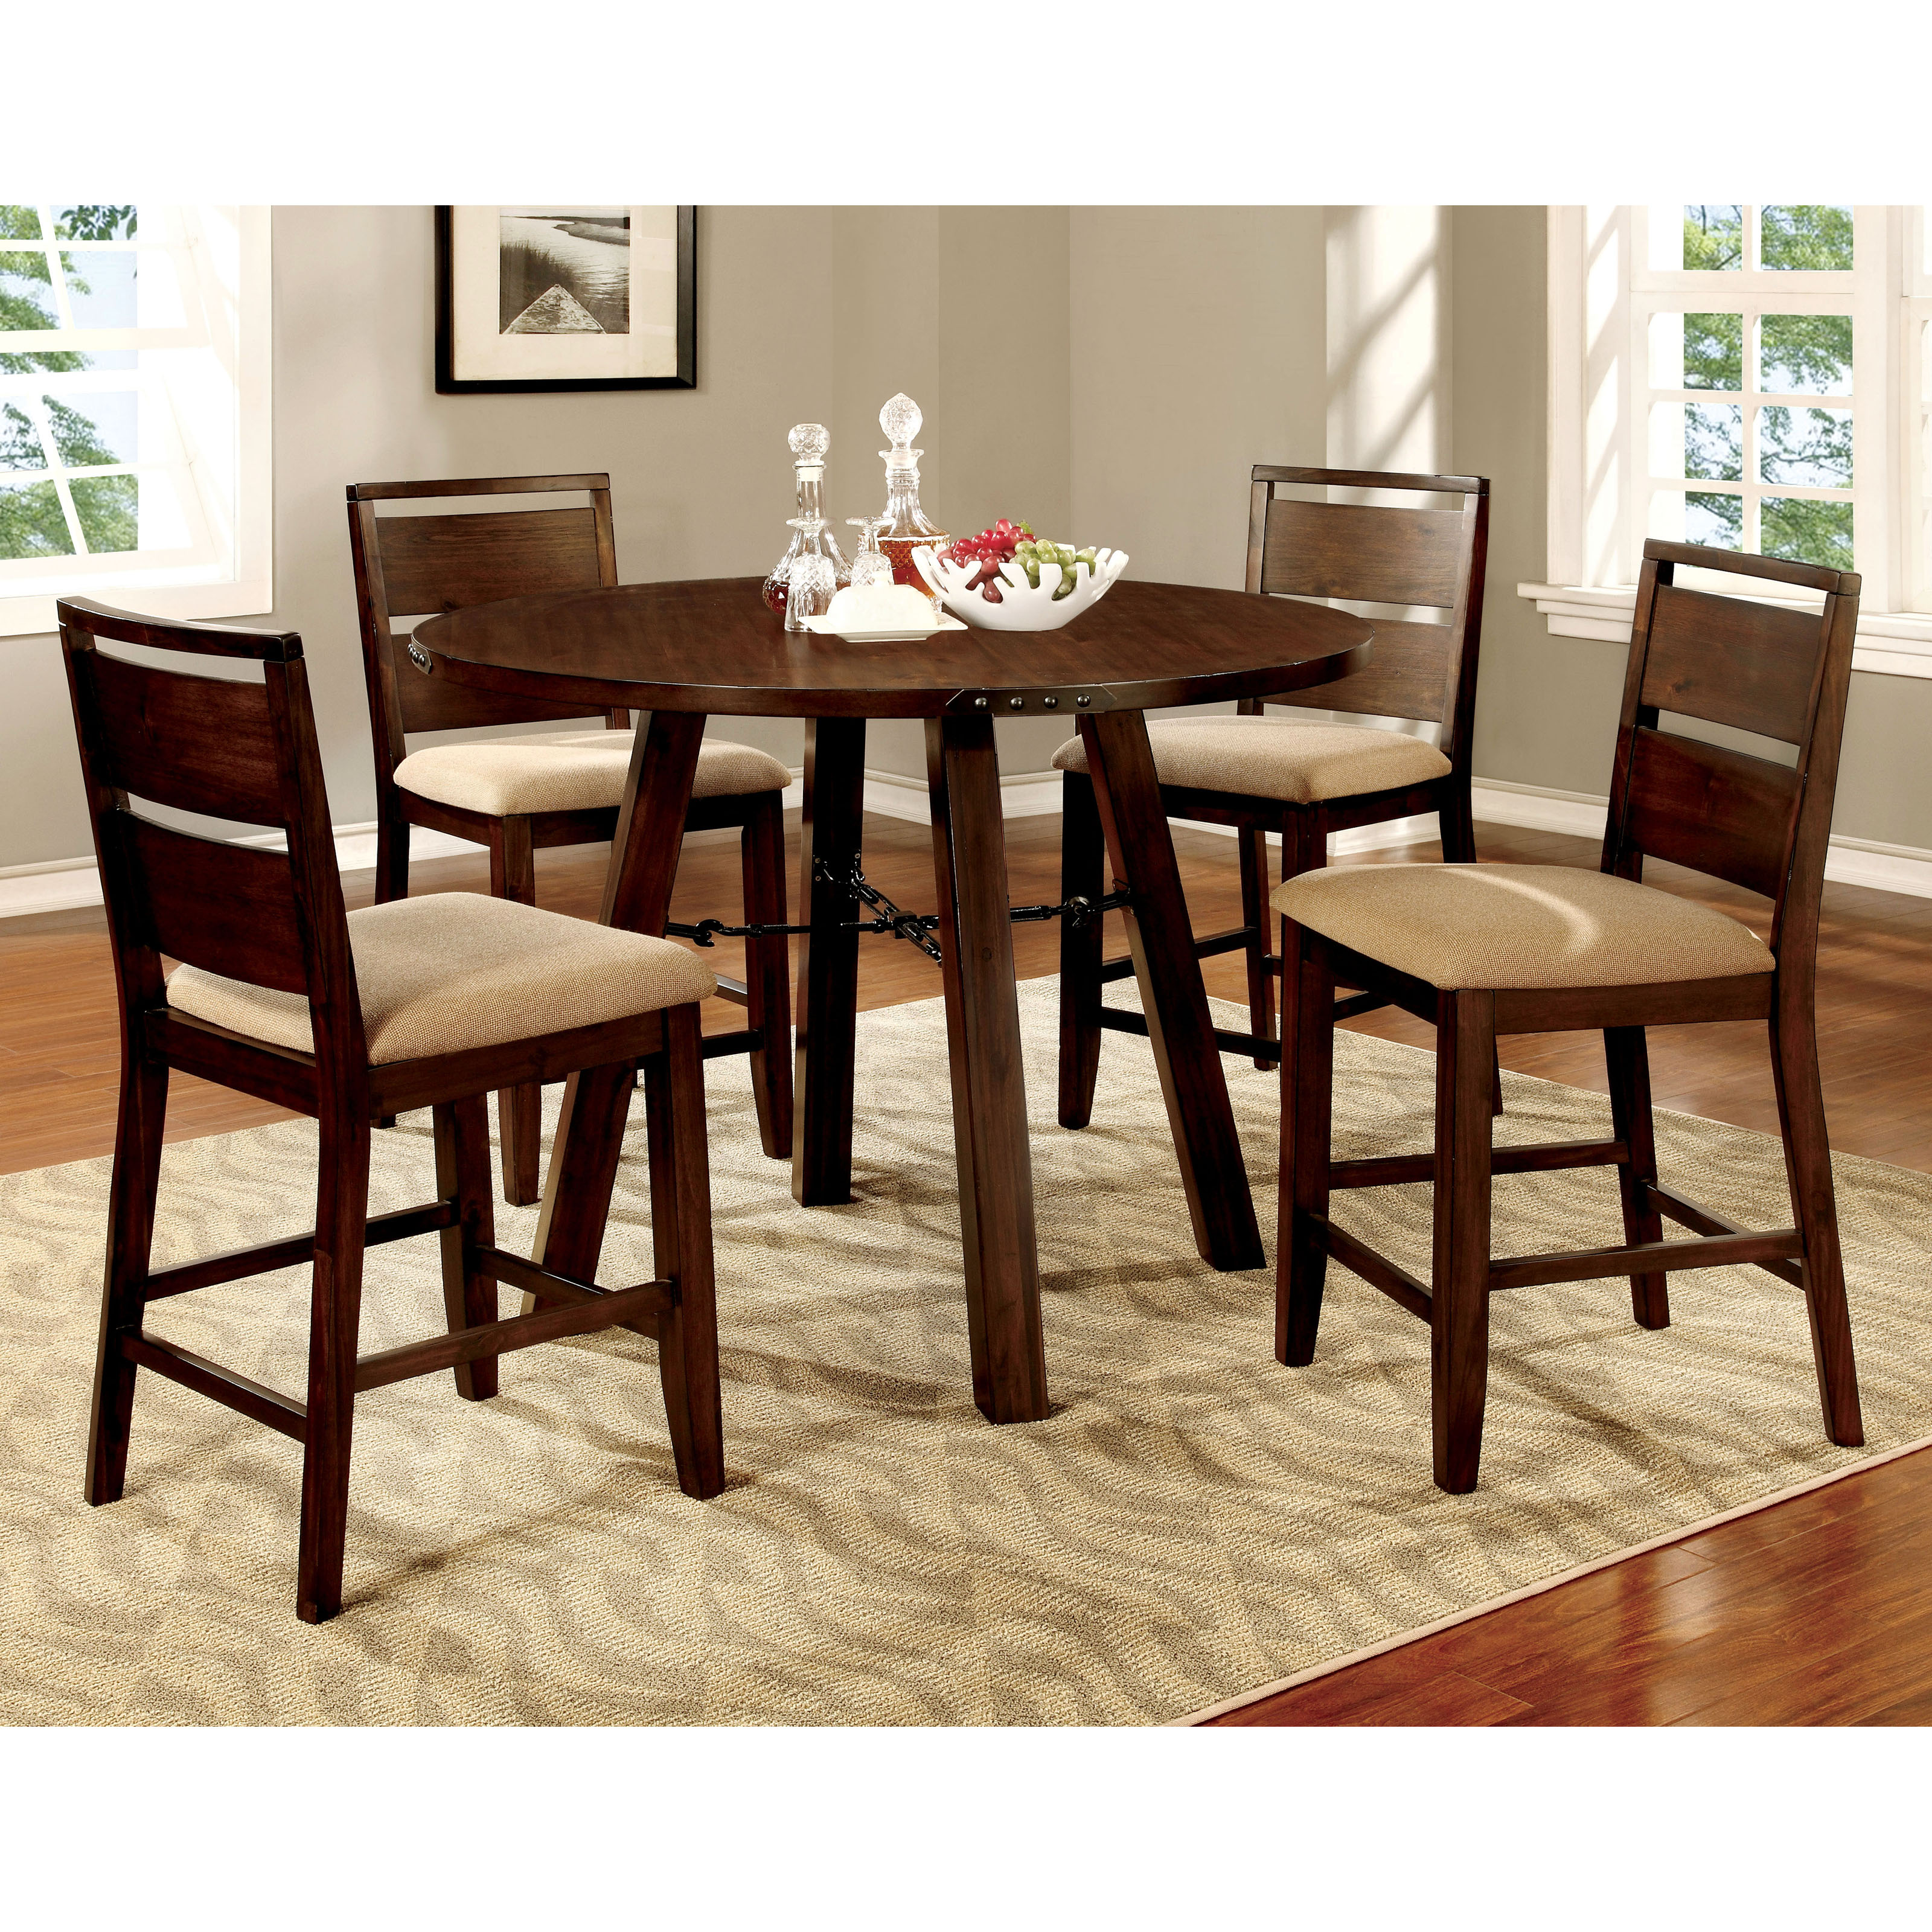 Counter height round table and chairs - Furniture Of America Olmsted 5 Piece Counter Height Metal Framed Dining Table Set Hayneedle